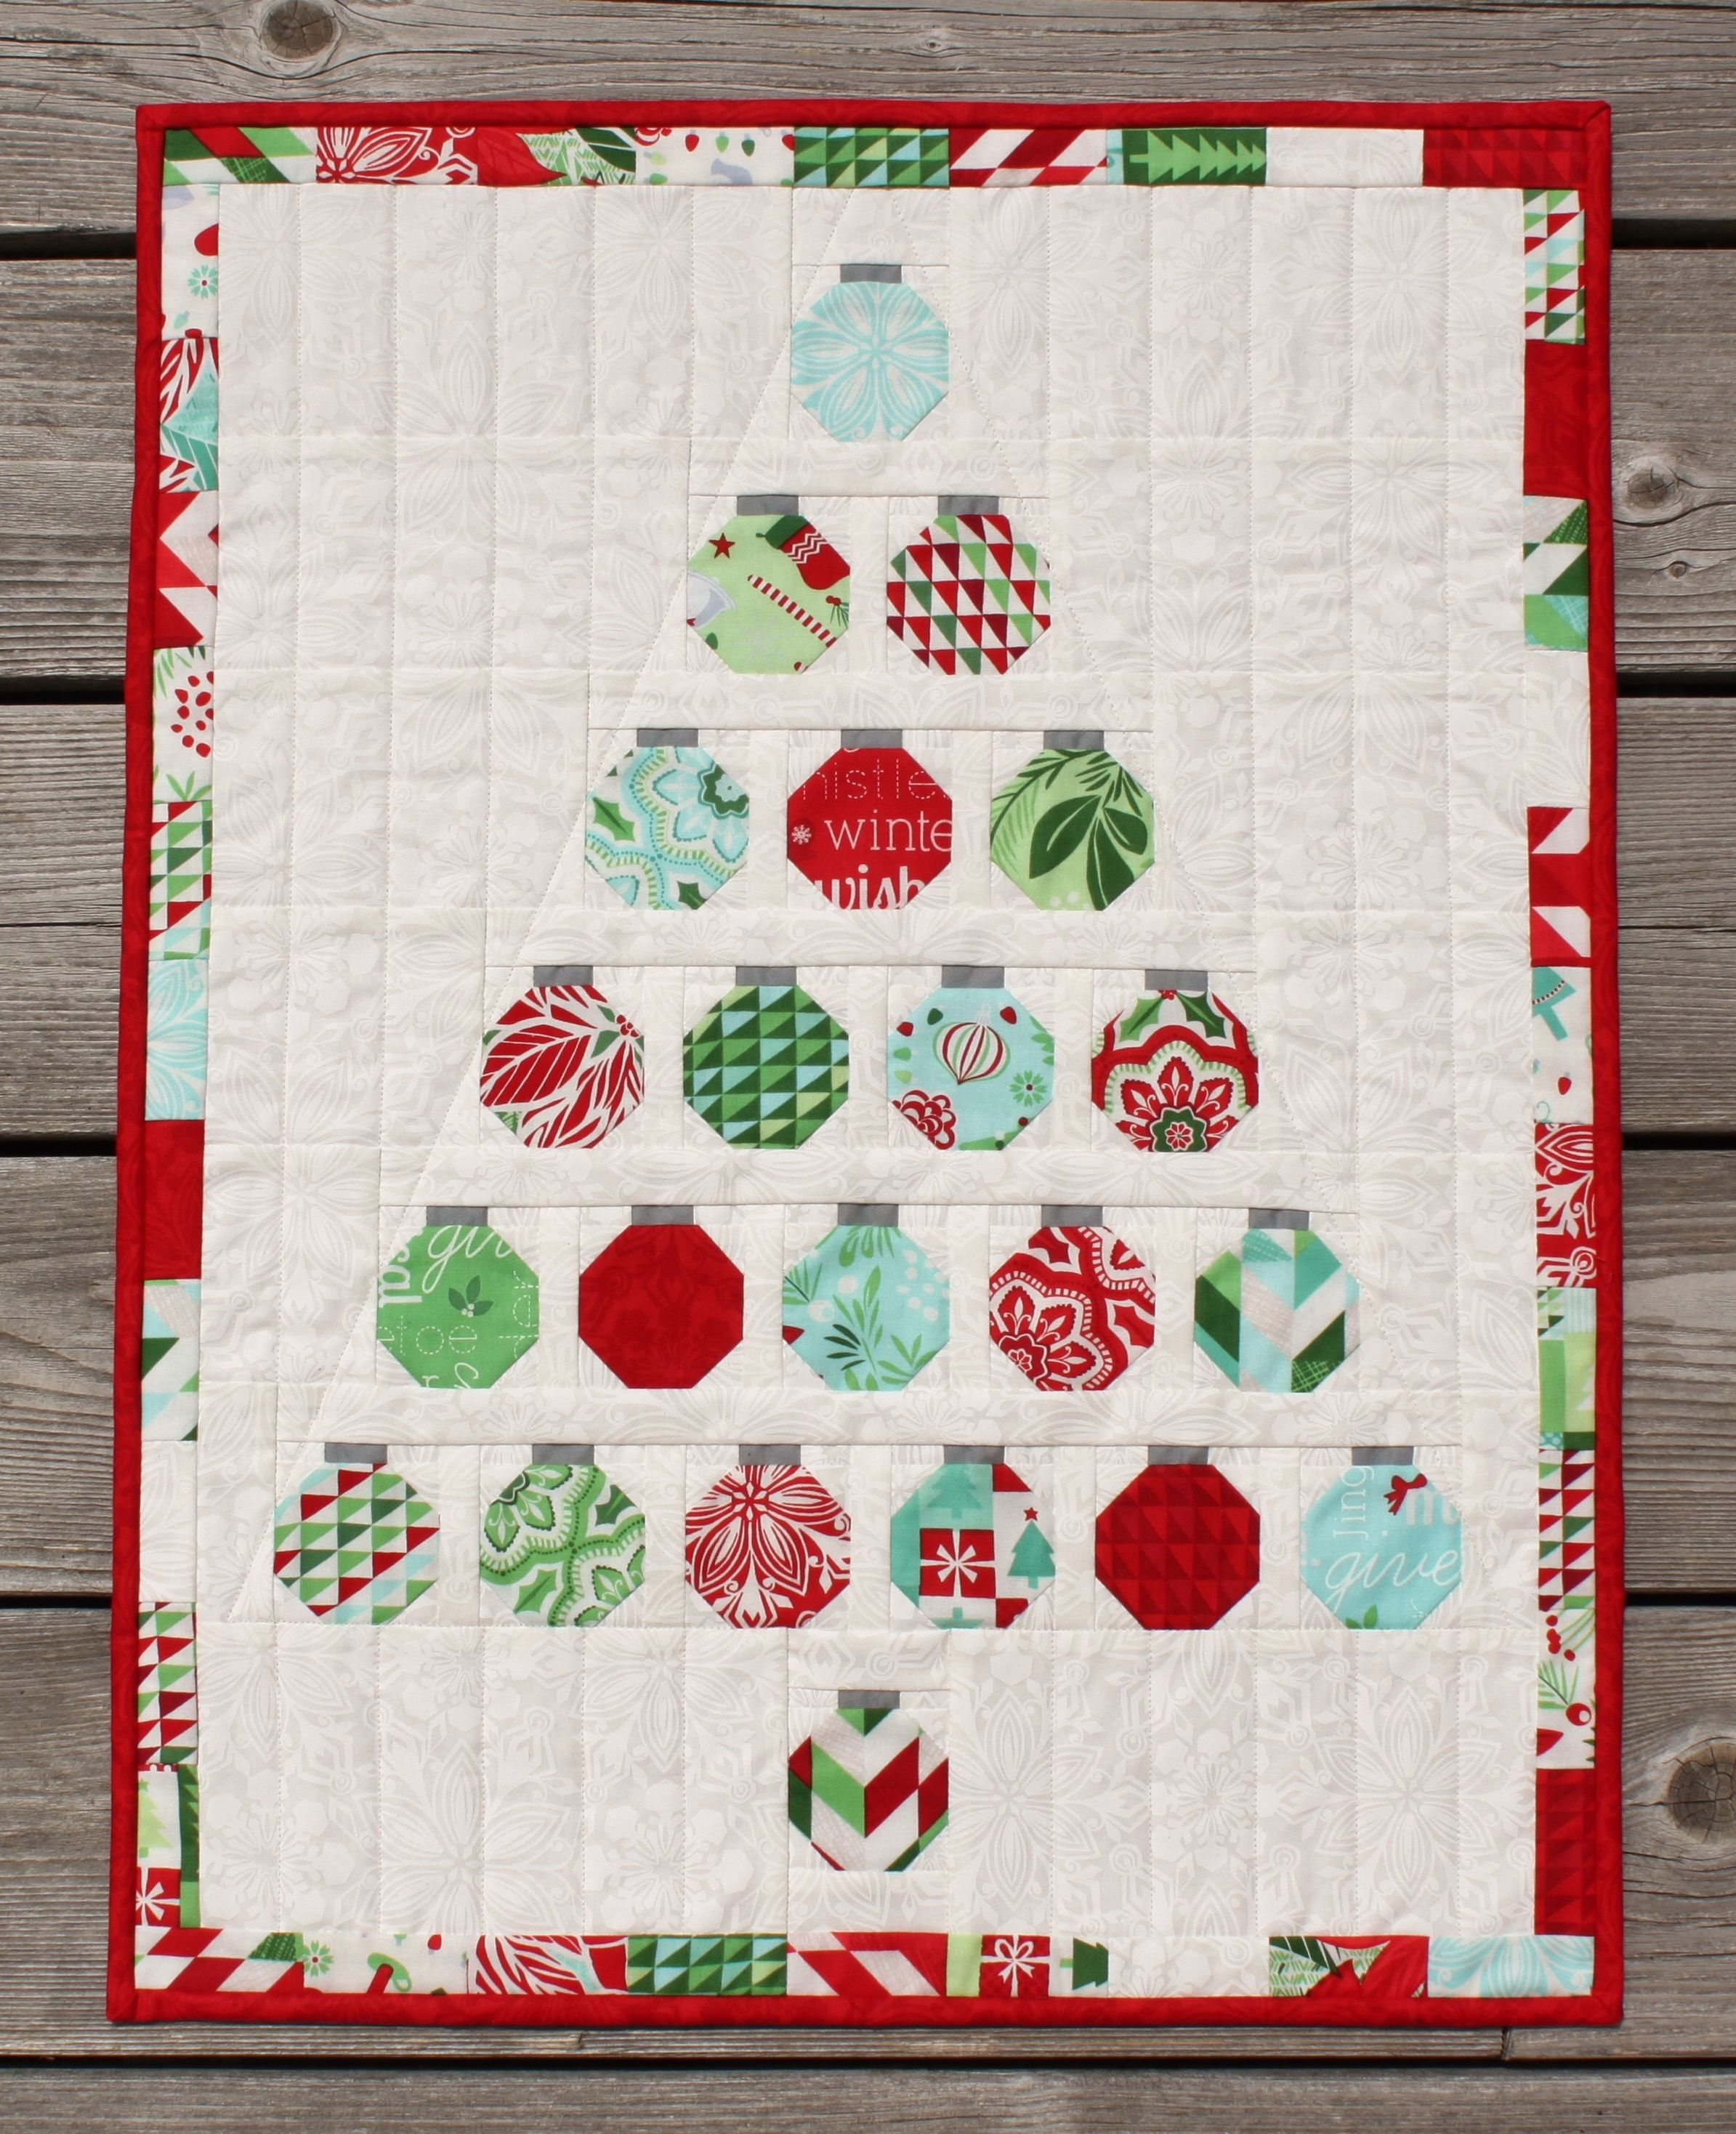 Christmas Baubles Wall Quilt - simple blocks to make a CUTE wall hanging! Free download.